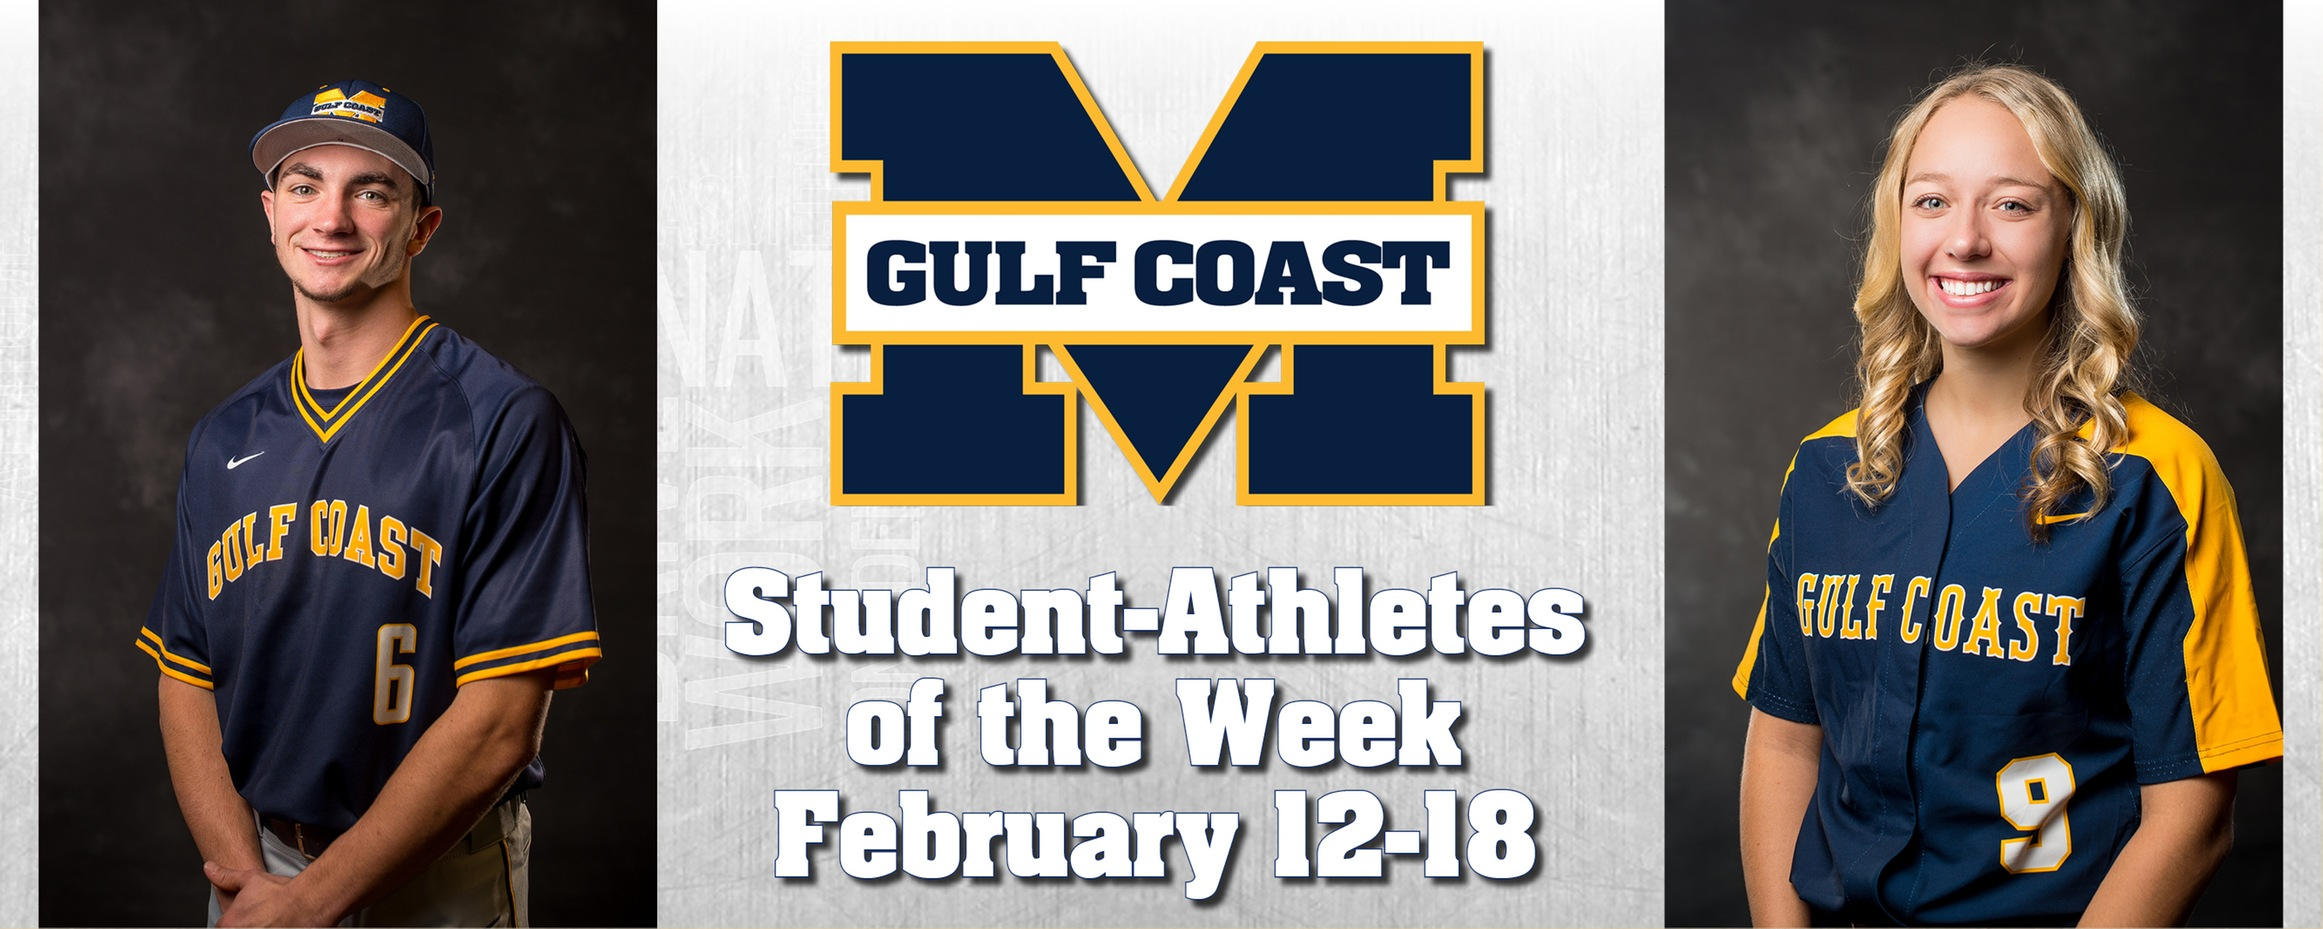 Menhennett, Sanders named MGCCC Student-Athletes of the Week